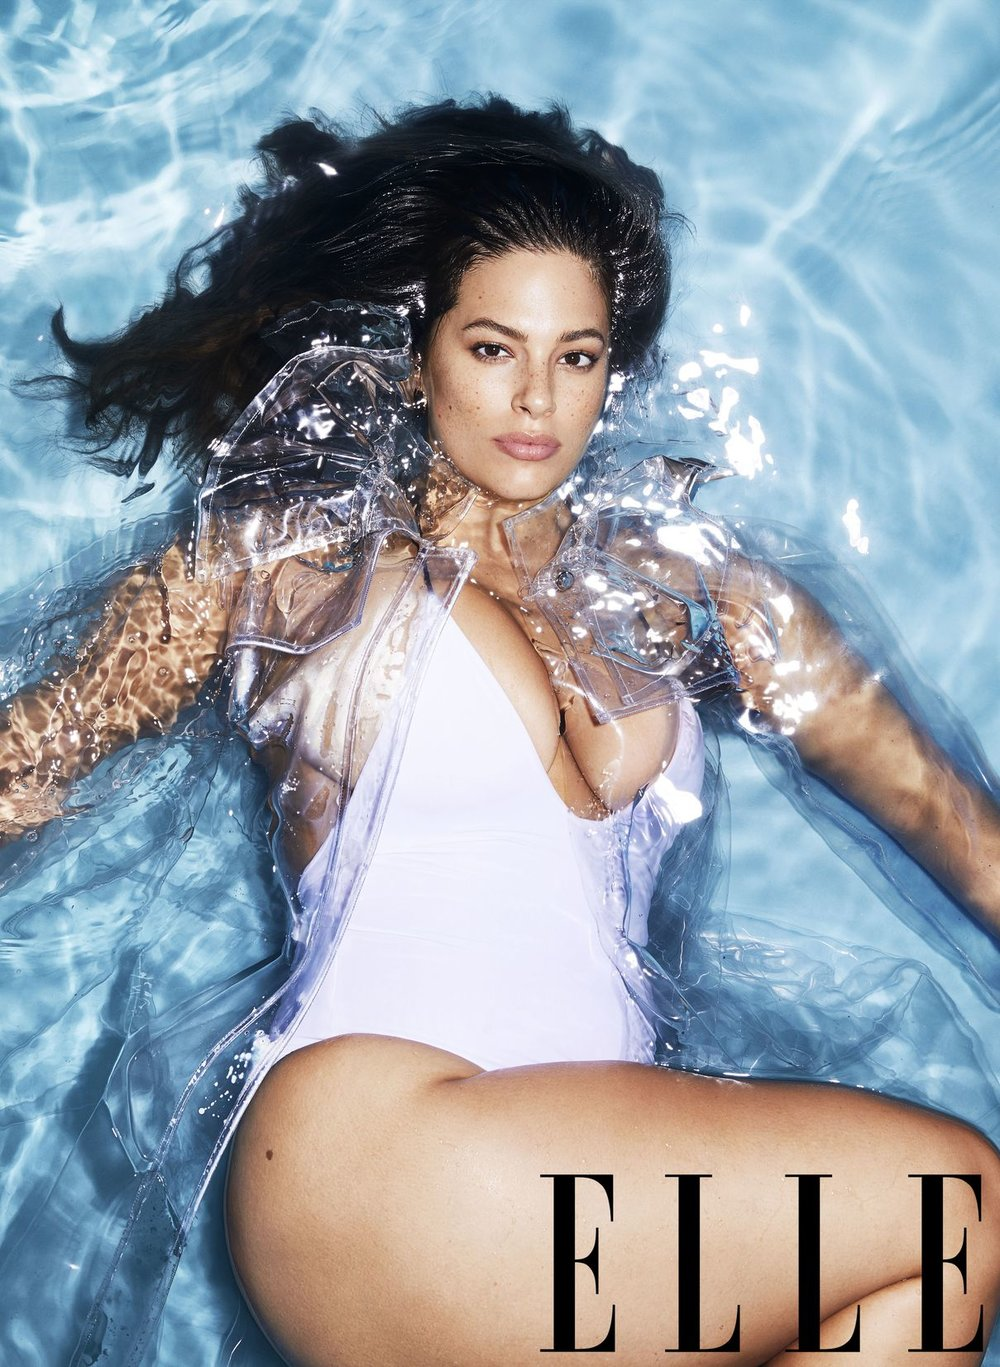 Ashley Graham Elle US Feb 2019 (2).jpg